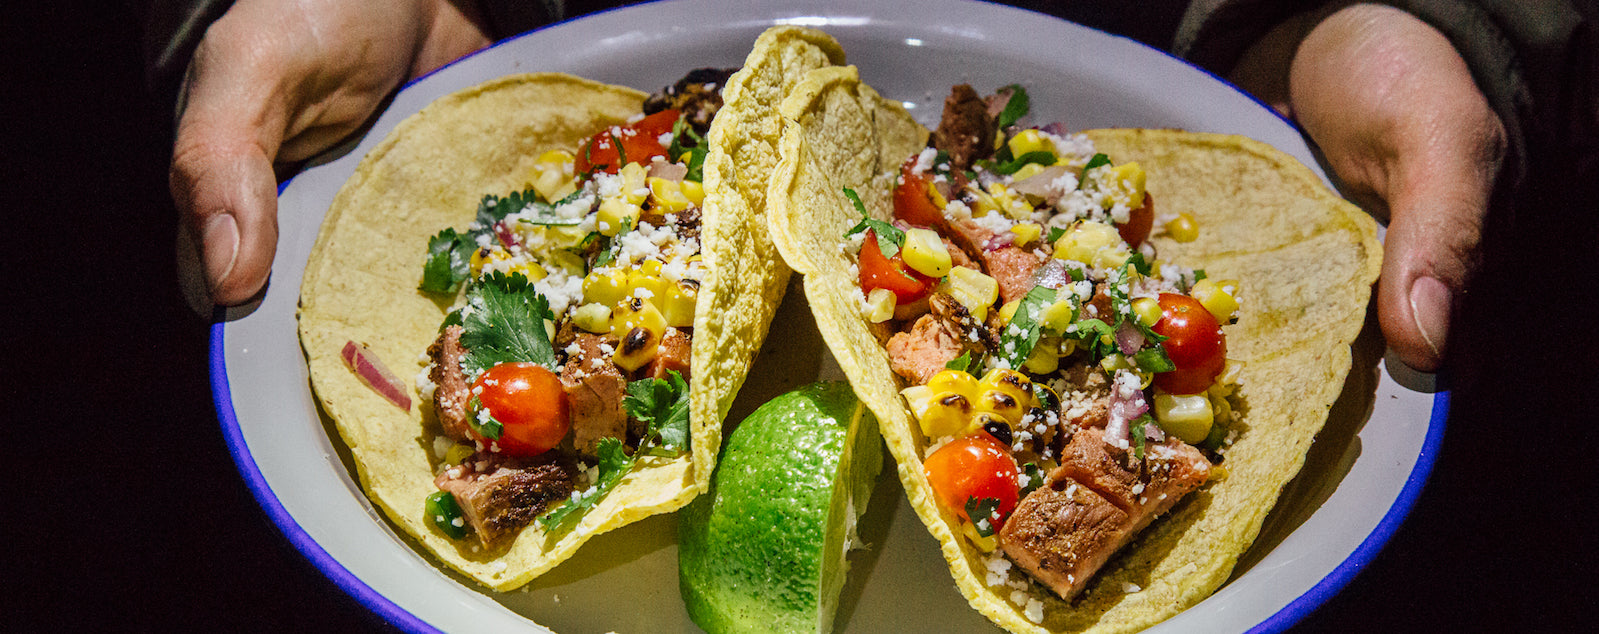 Grilling at Night: After Dark Steak Tacos